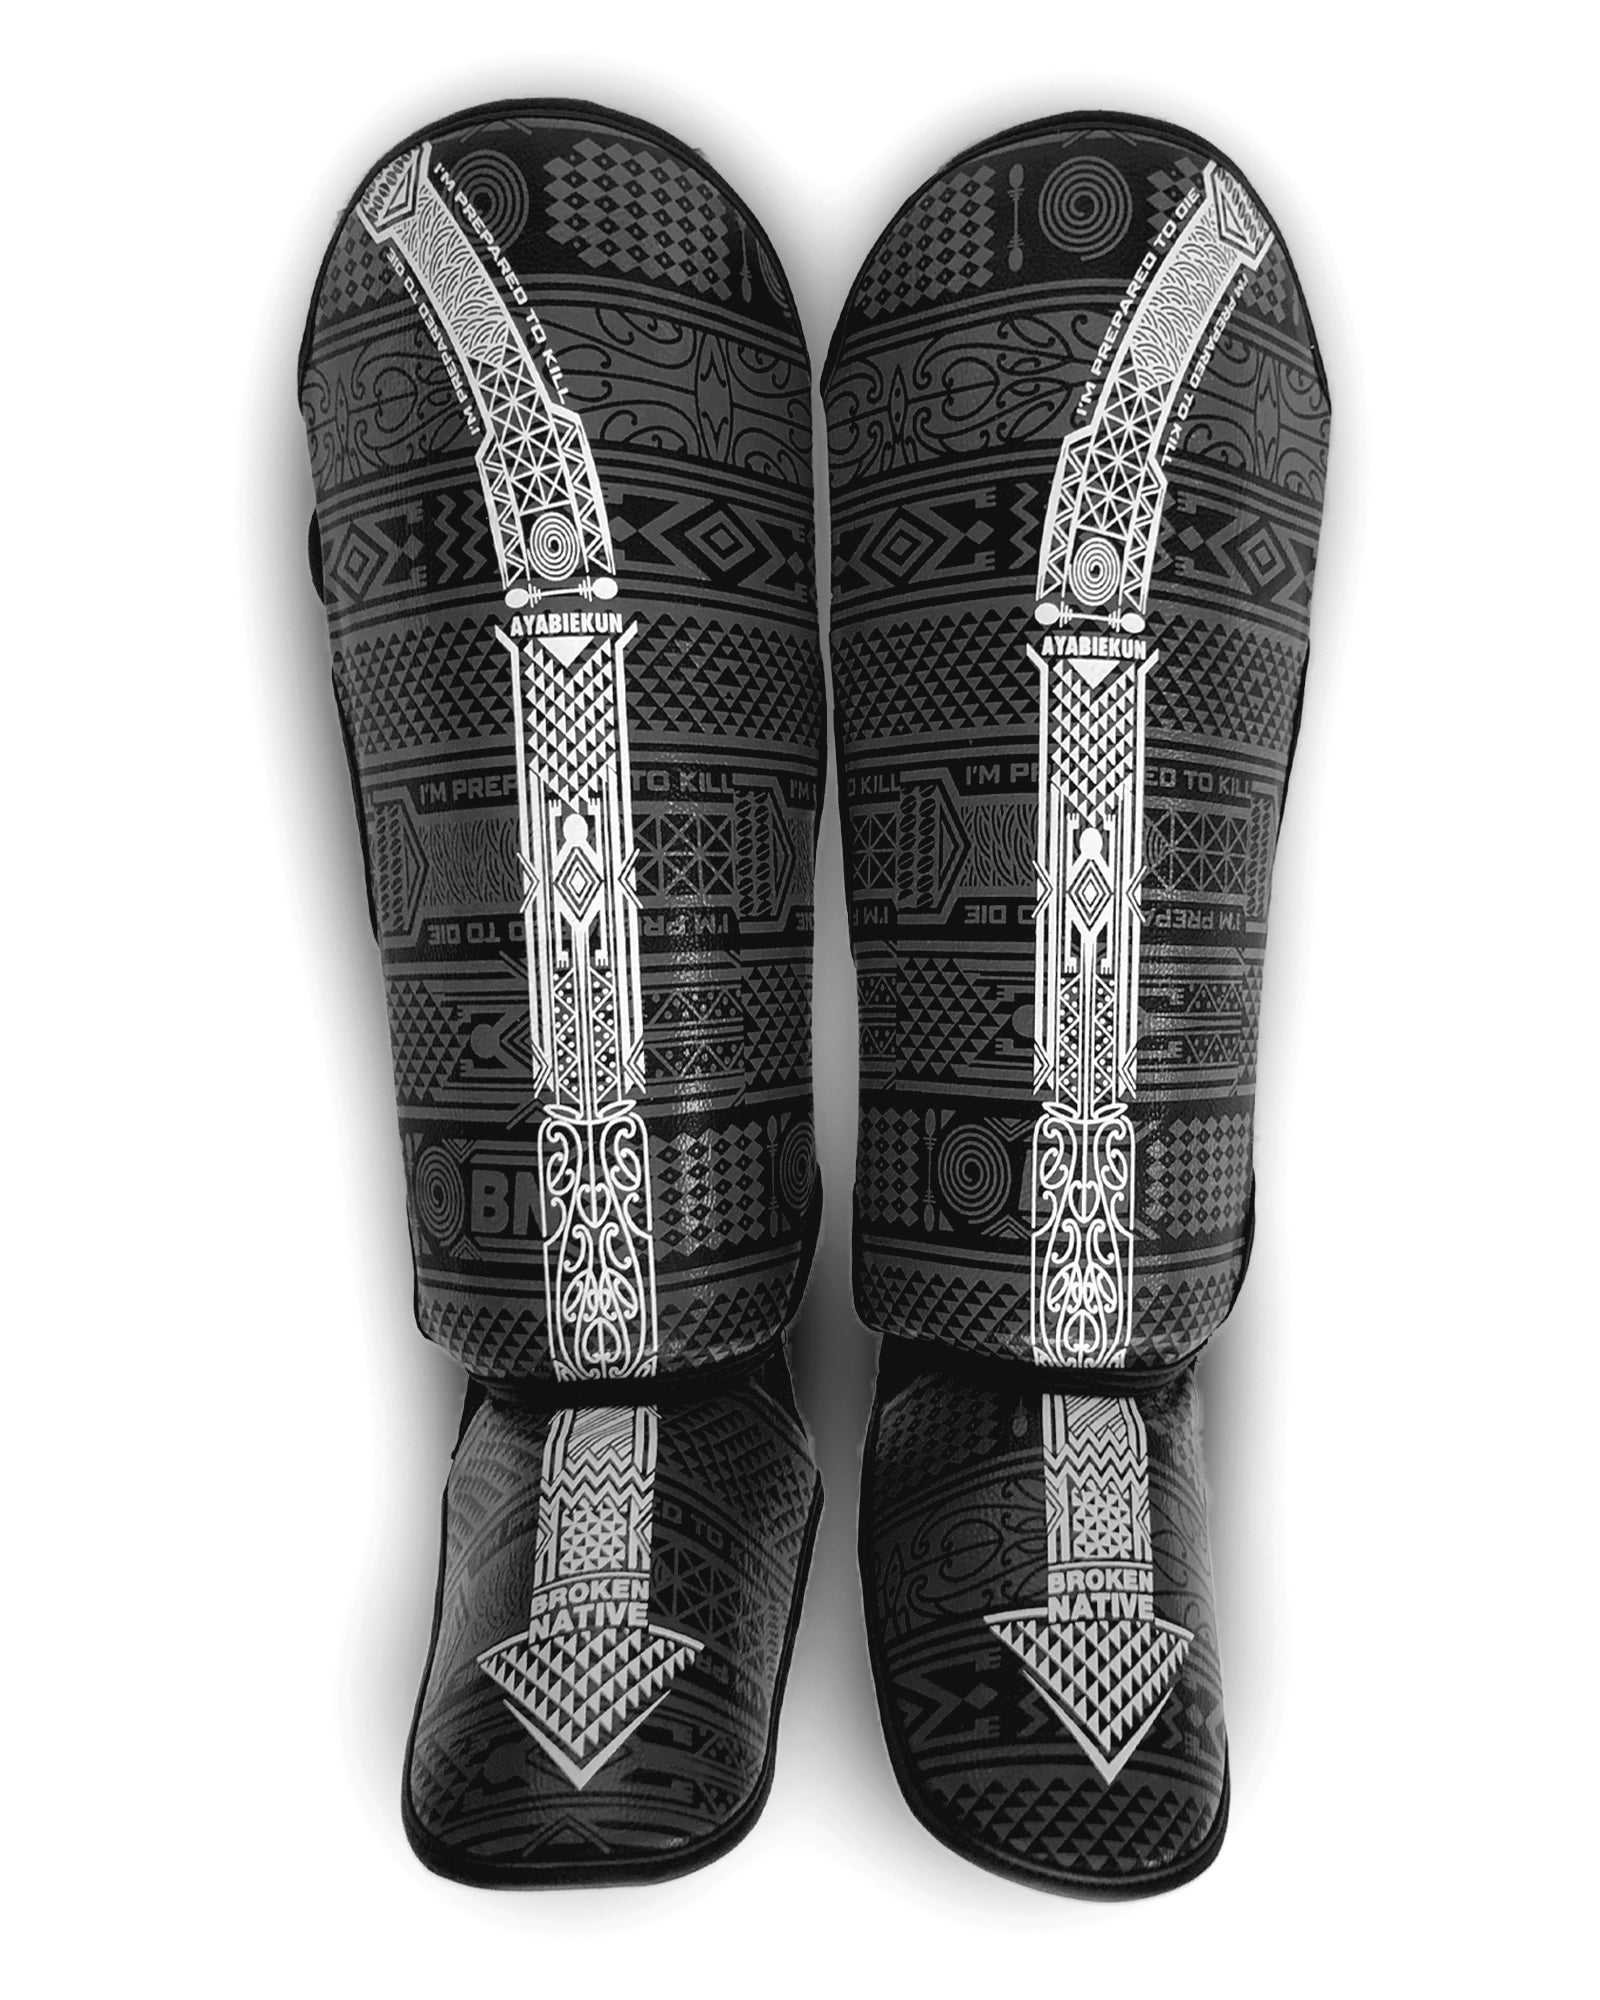 Israel Adesanya The Last Stylebender BN Shin Guards